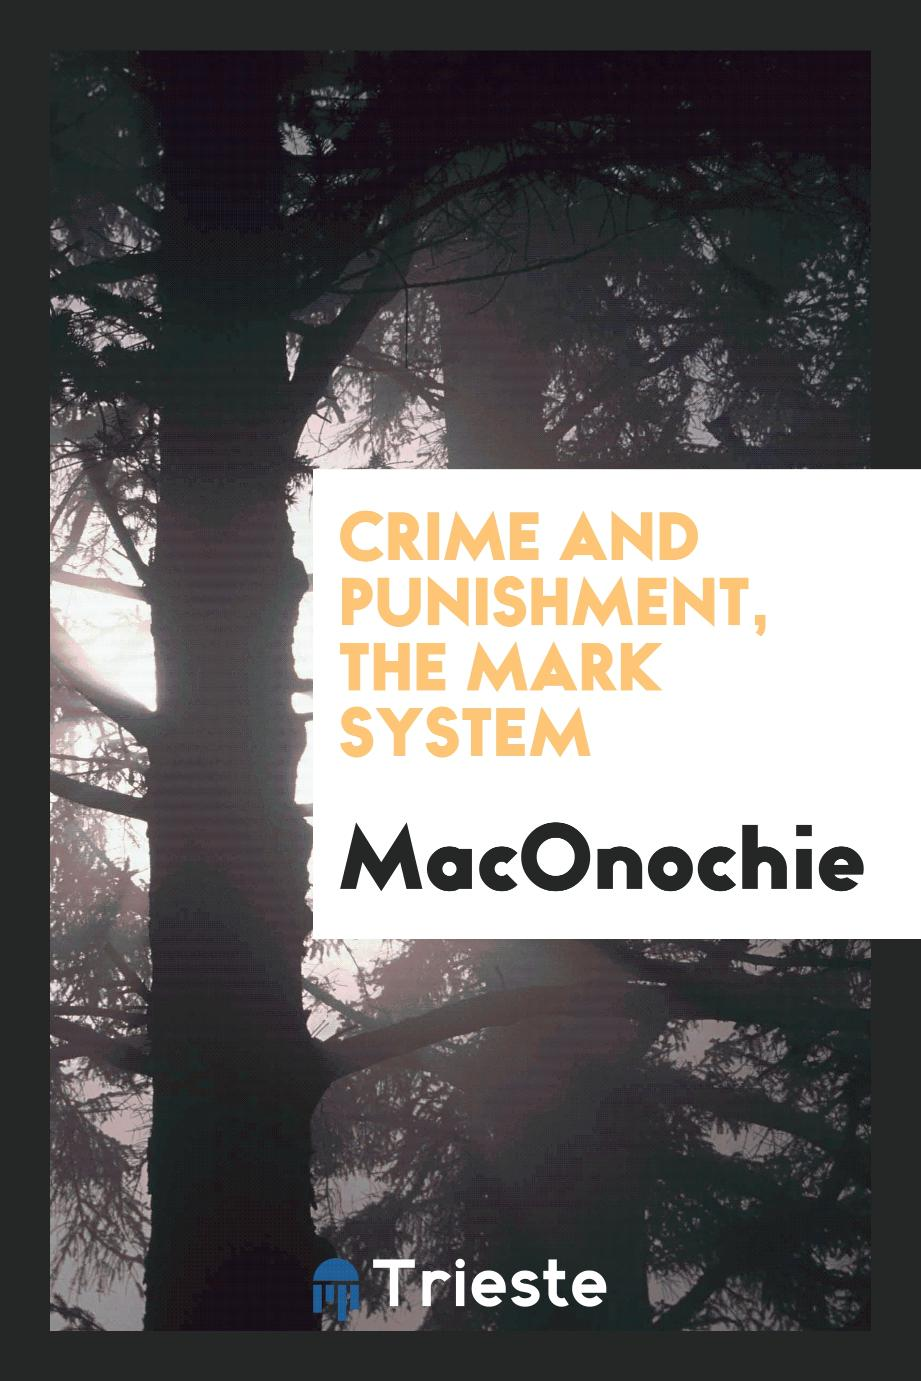 Crime and punishment, the mark system